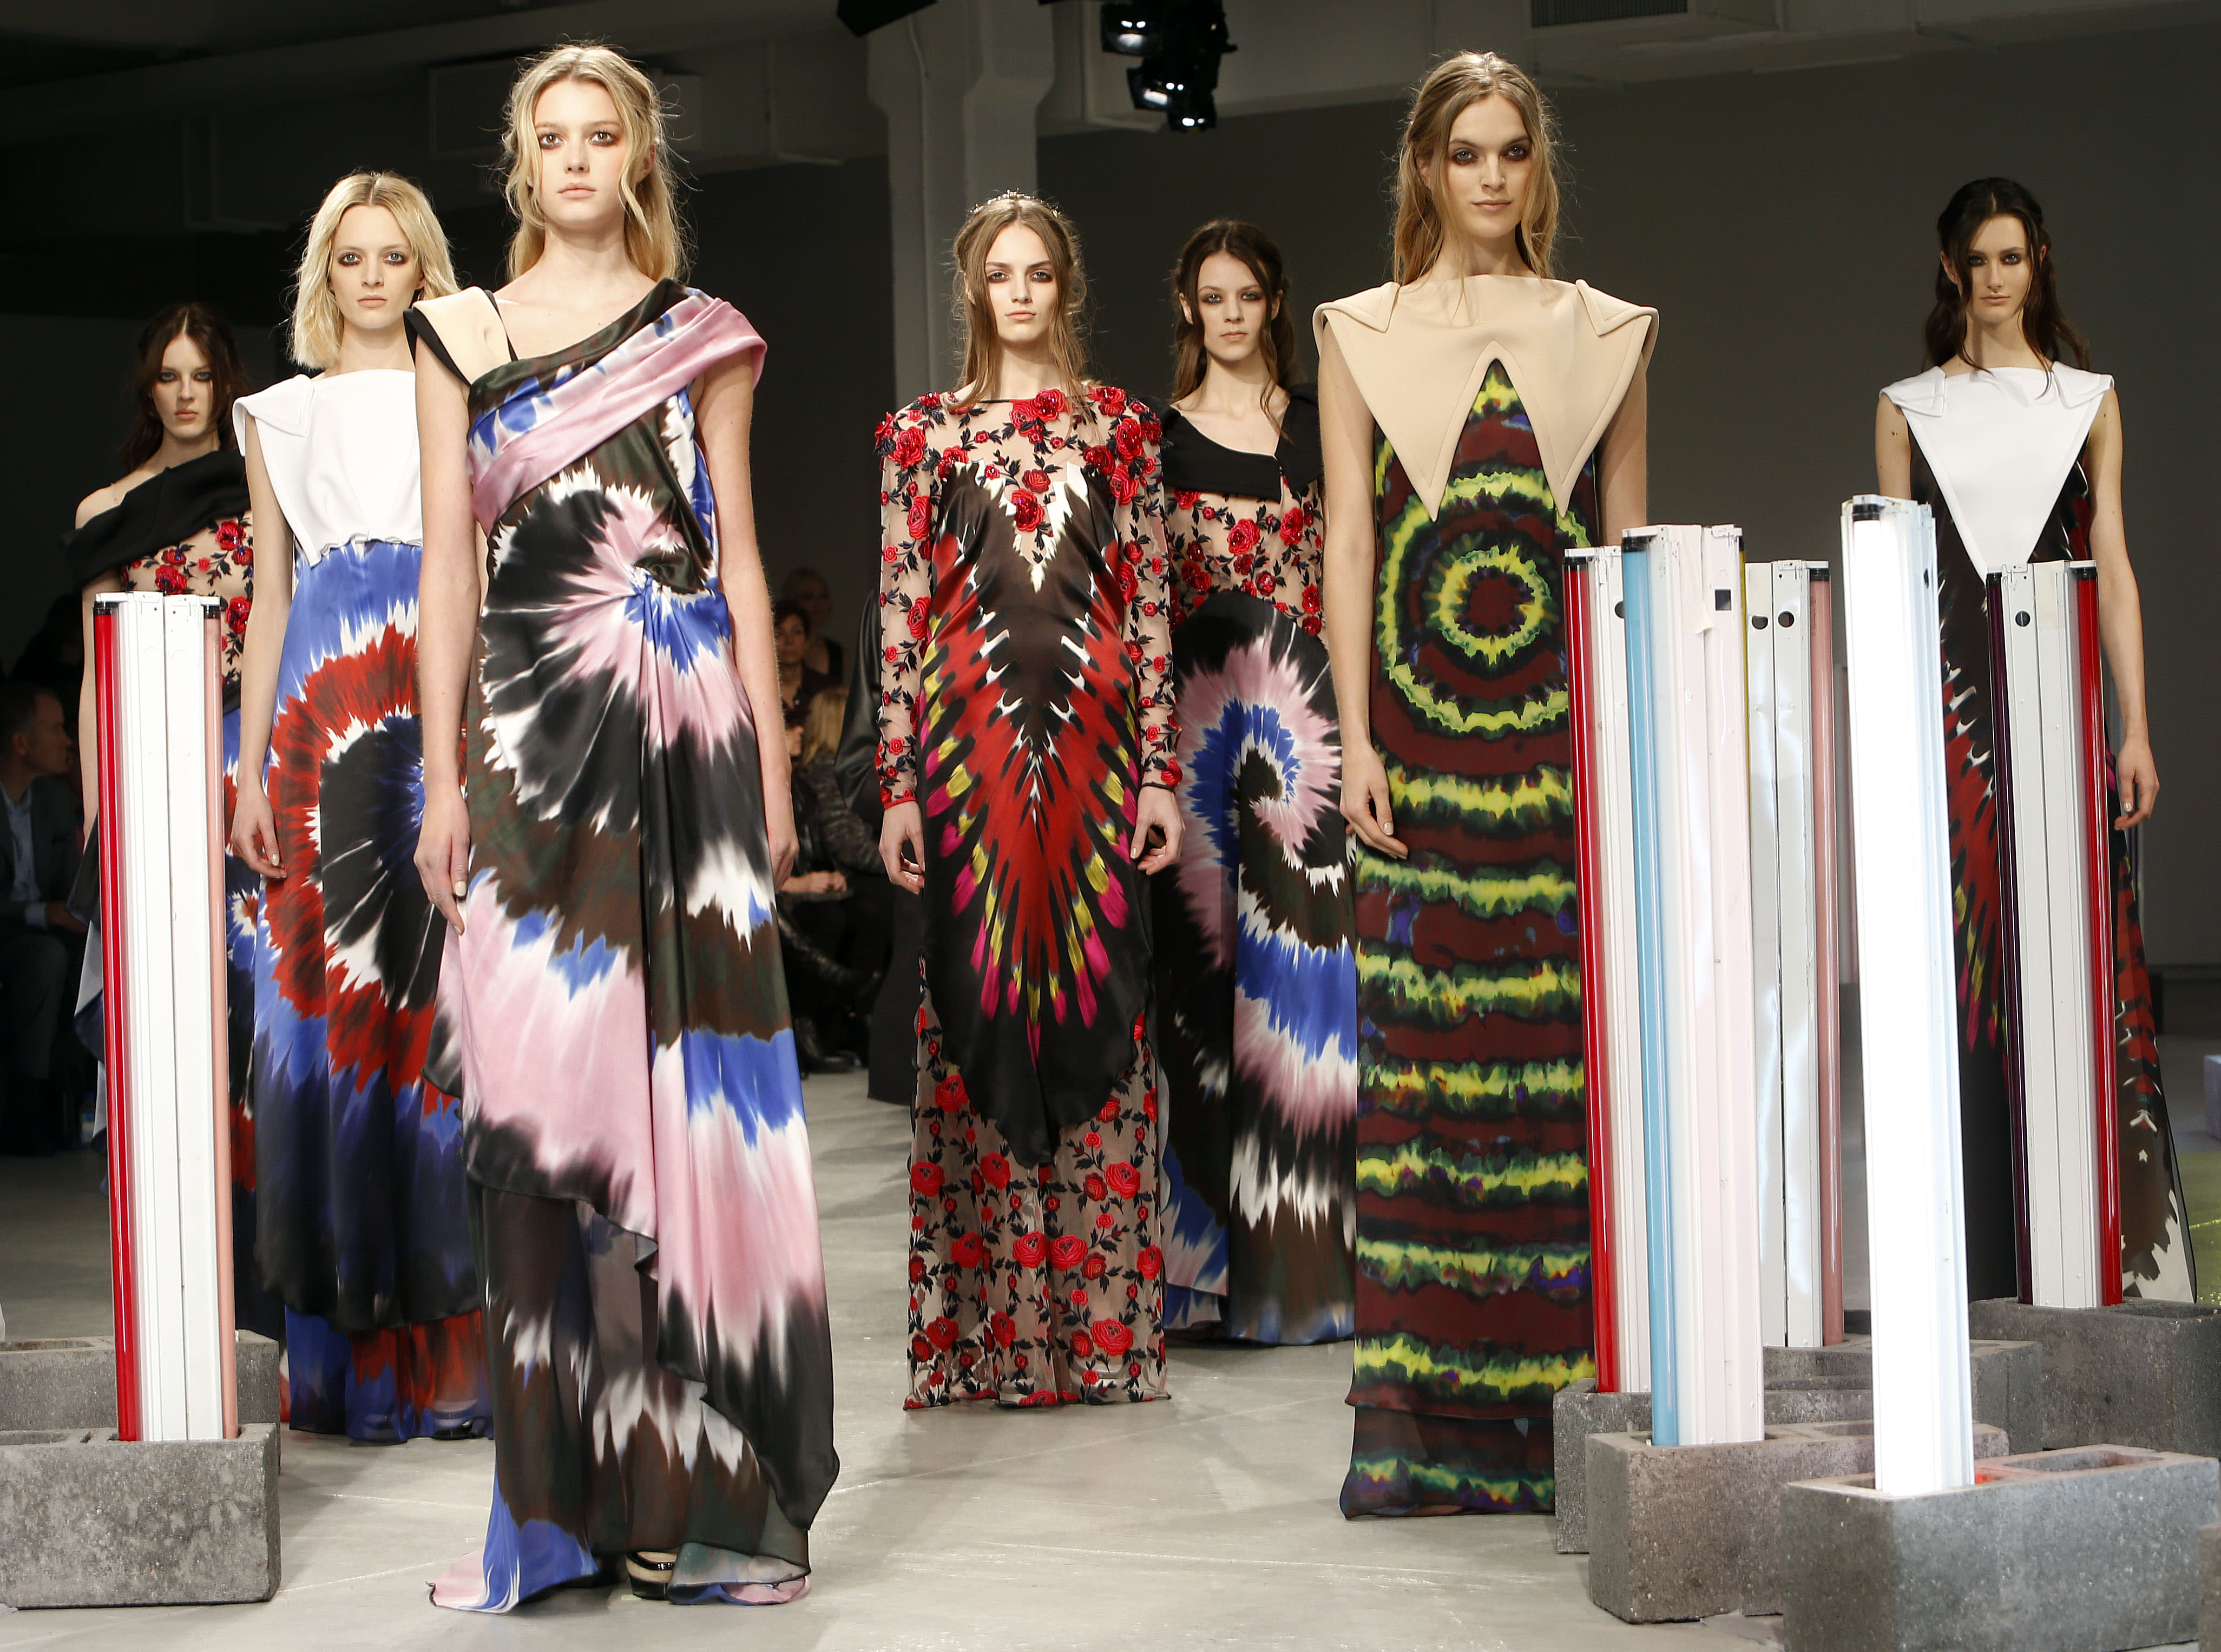 The Rodarte Fall 2013 collection is modeled during Fashion Week, Tuesday, Feb. 12, 2013 in New York. (AP Photo/Jason DeCrow)